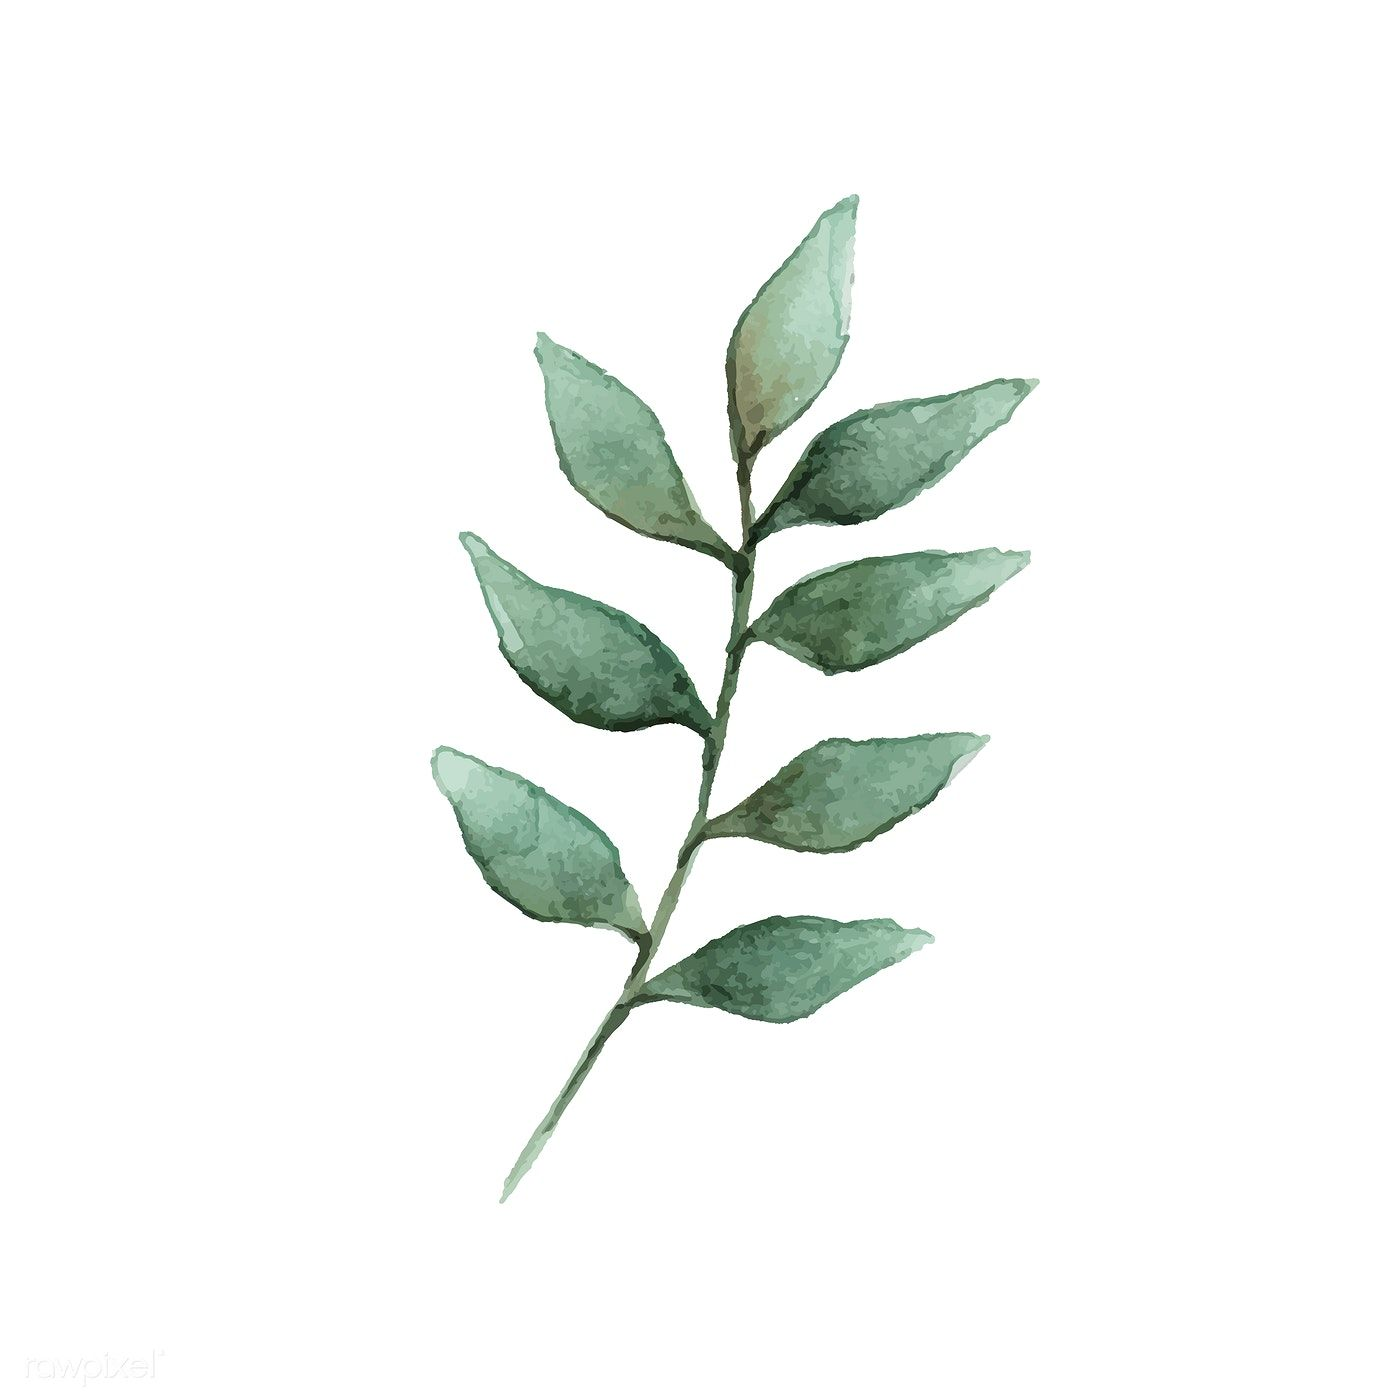 European Ash Leaf Painted In Watercolor Vector Free Image By